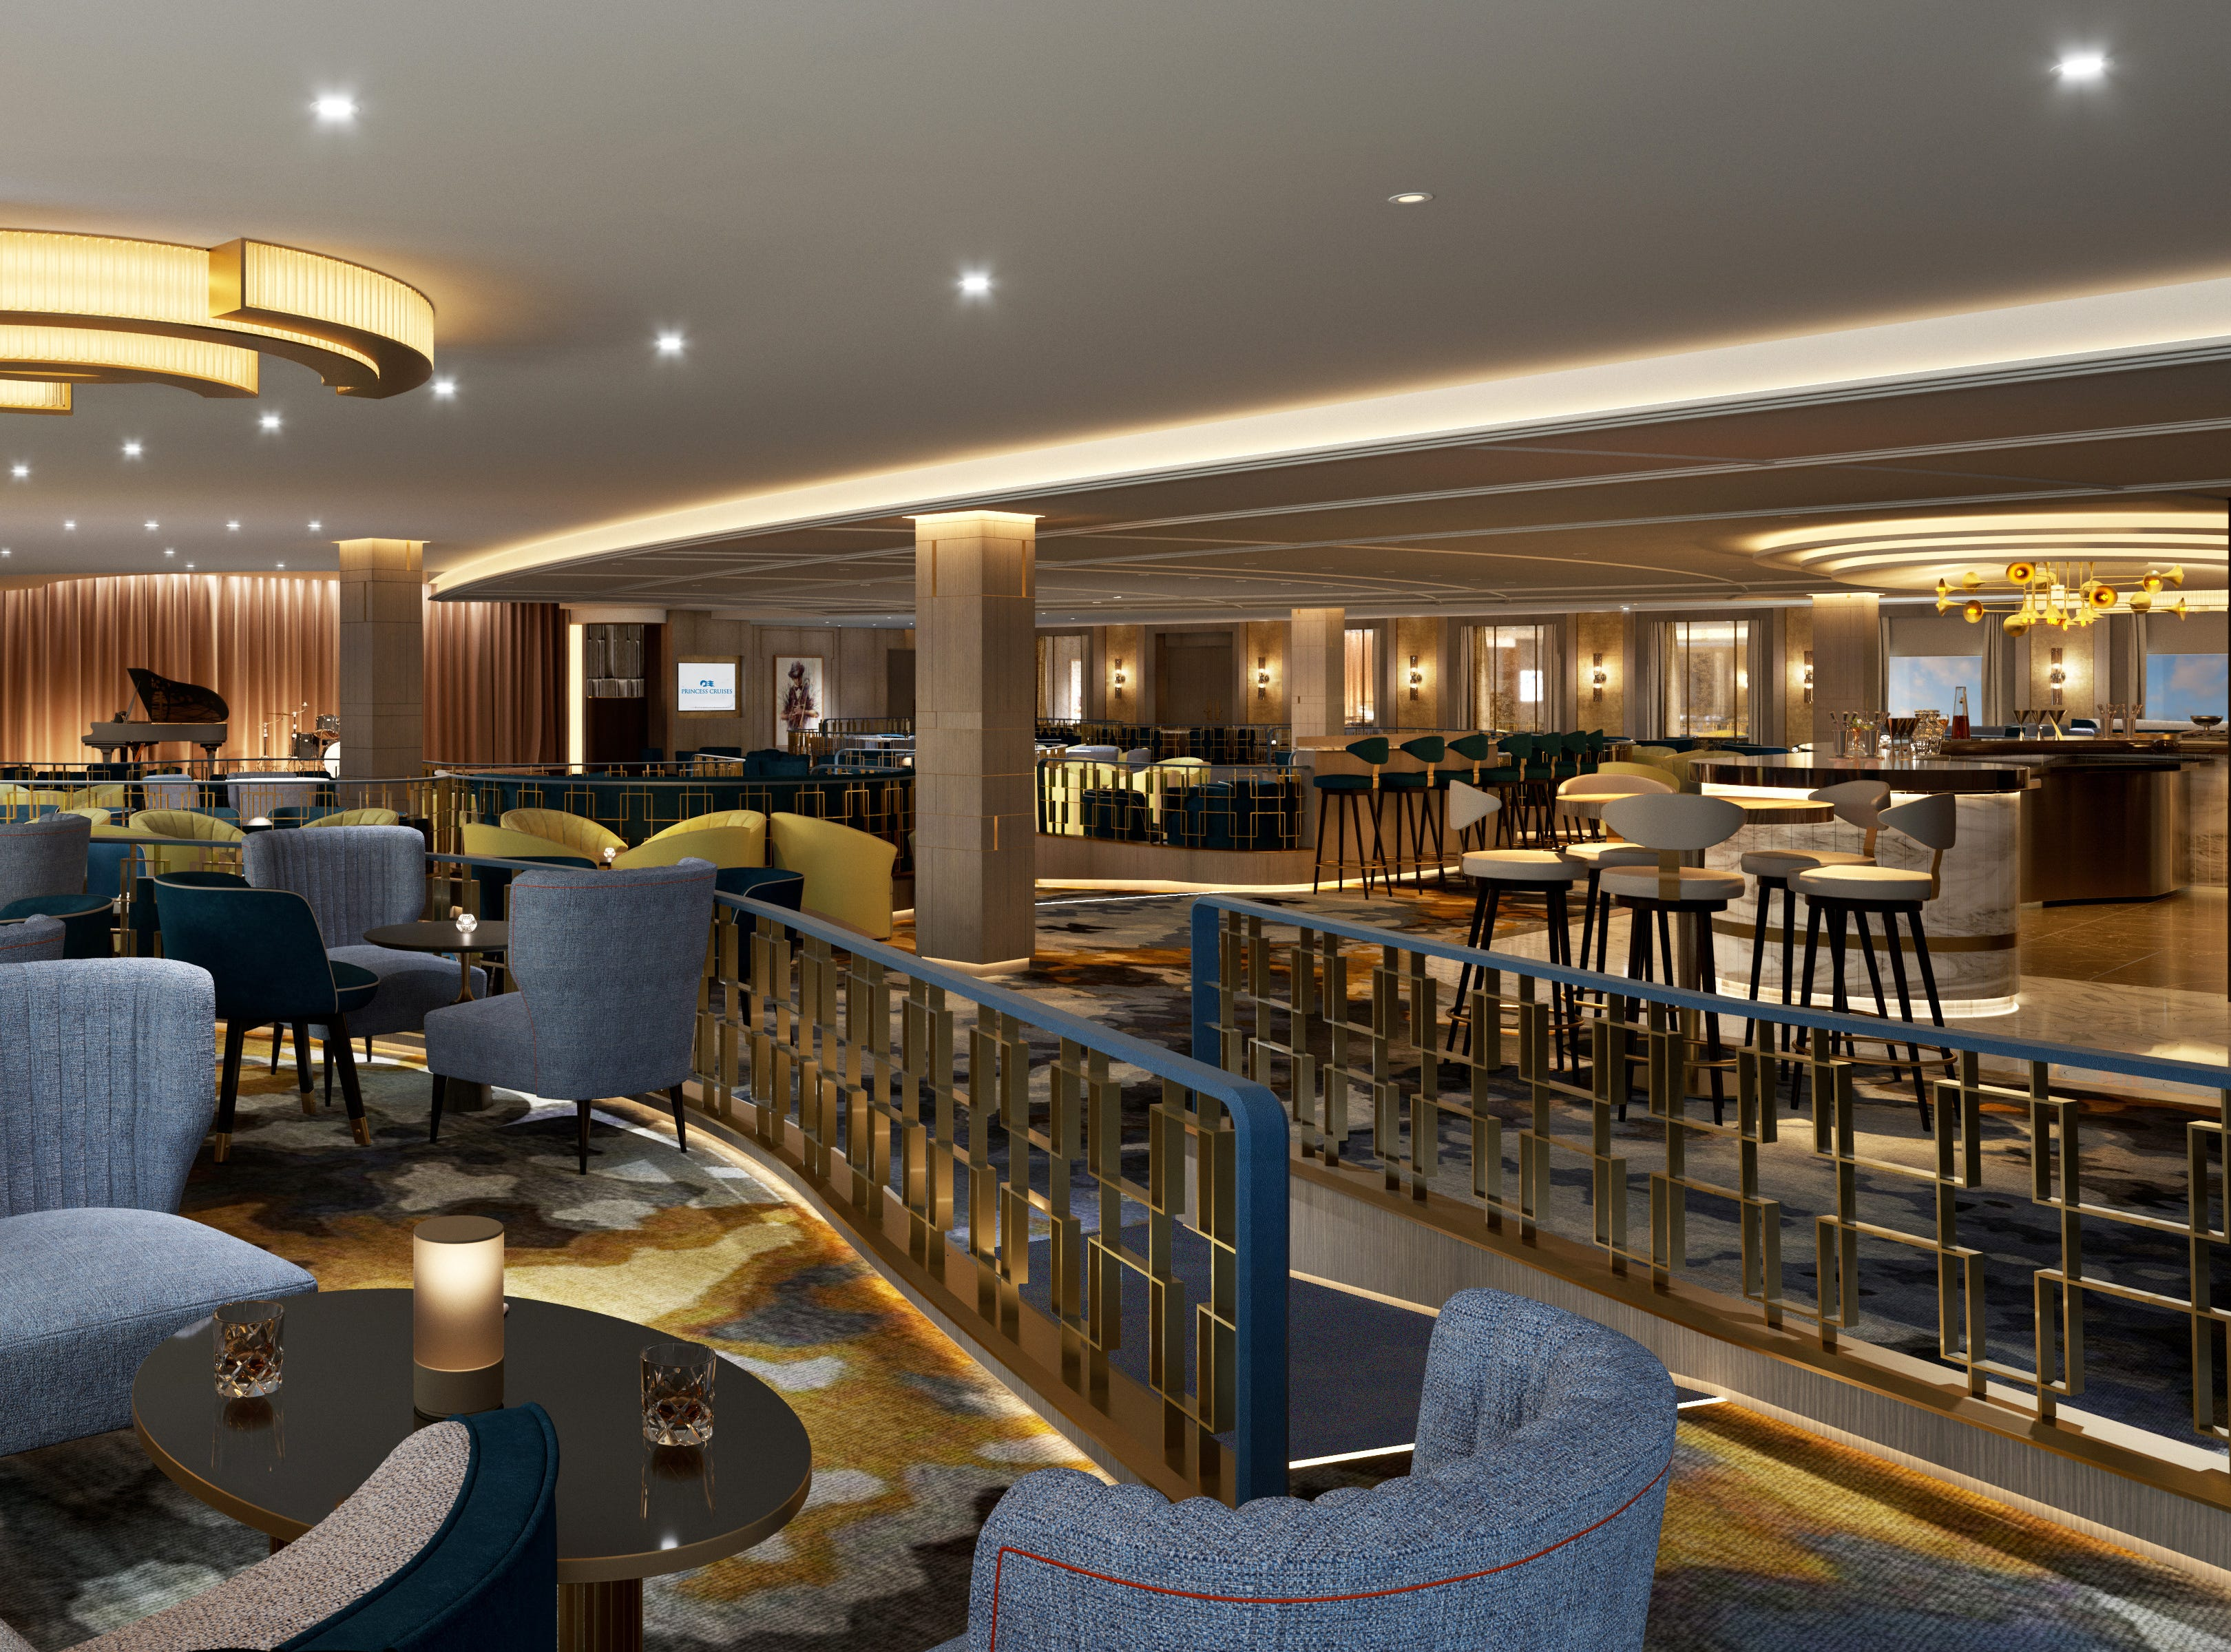 Lounge areas on Sky Princess will include the Vista Lounge, located at the back of the ship. It'll feature regular live entertainment ranging from musicians to comedians to illusionists.